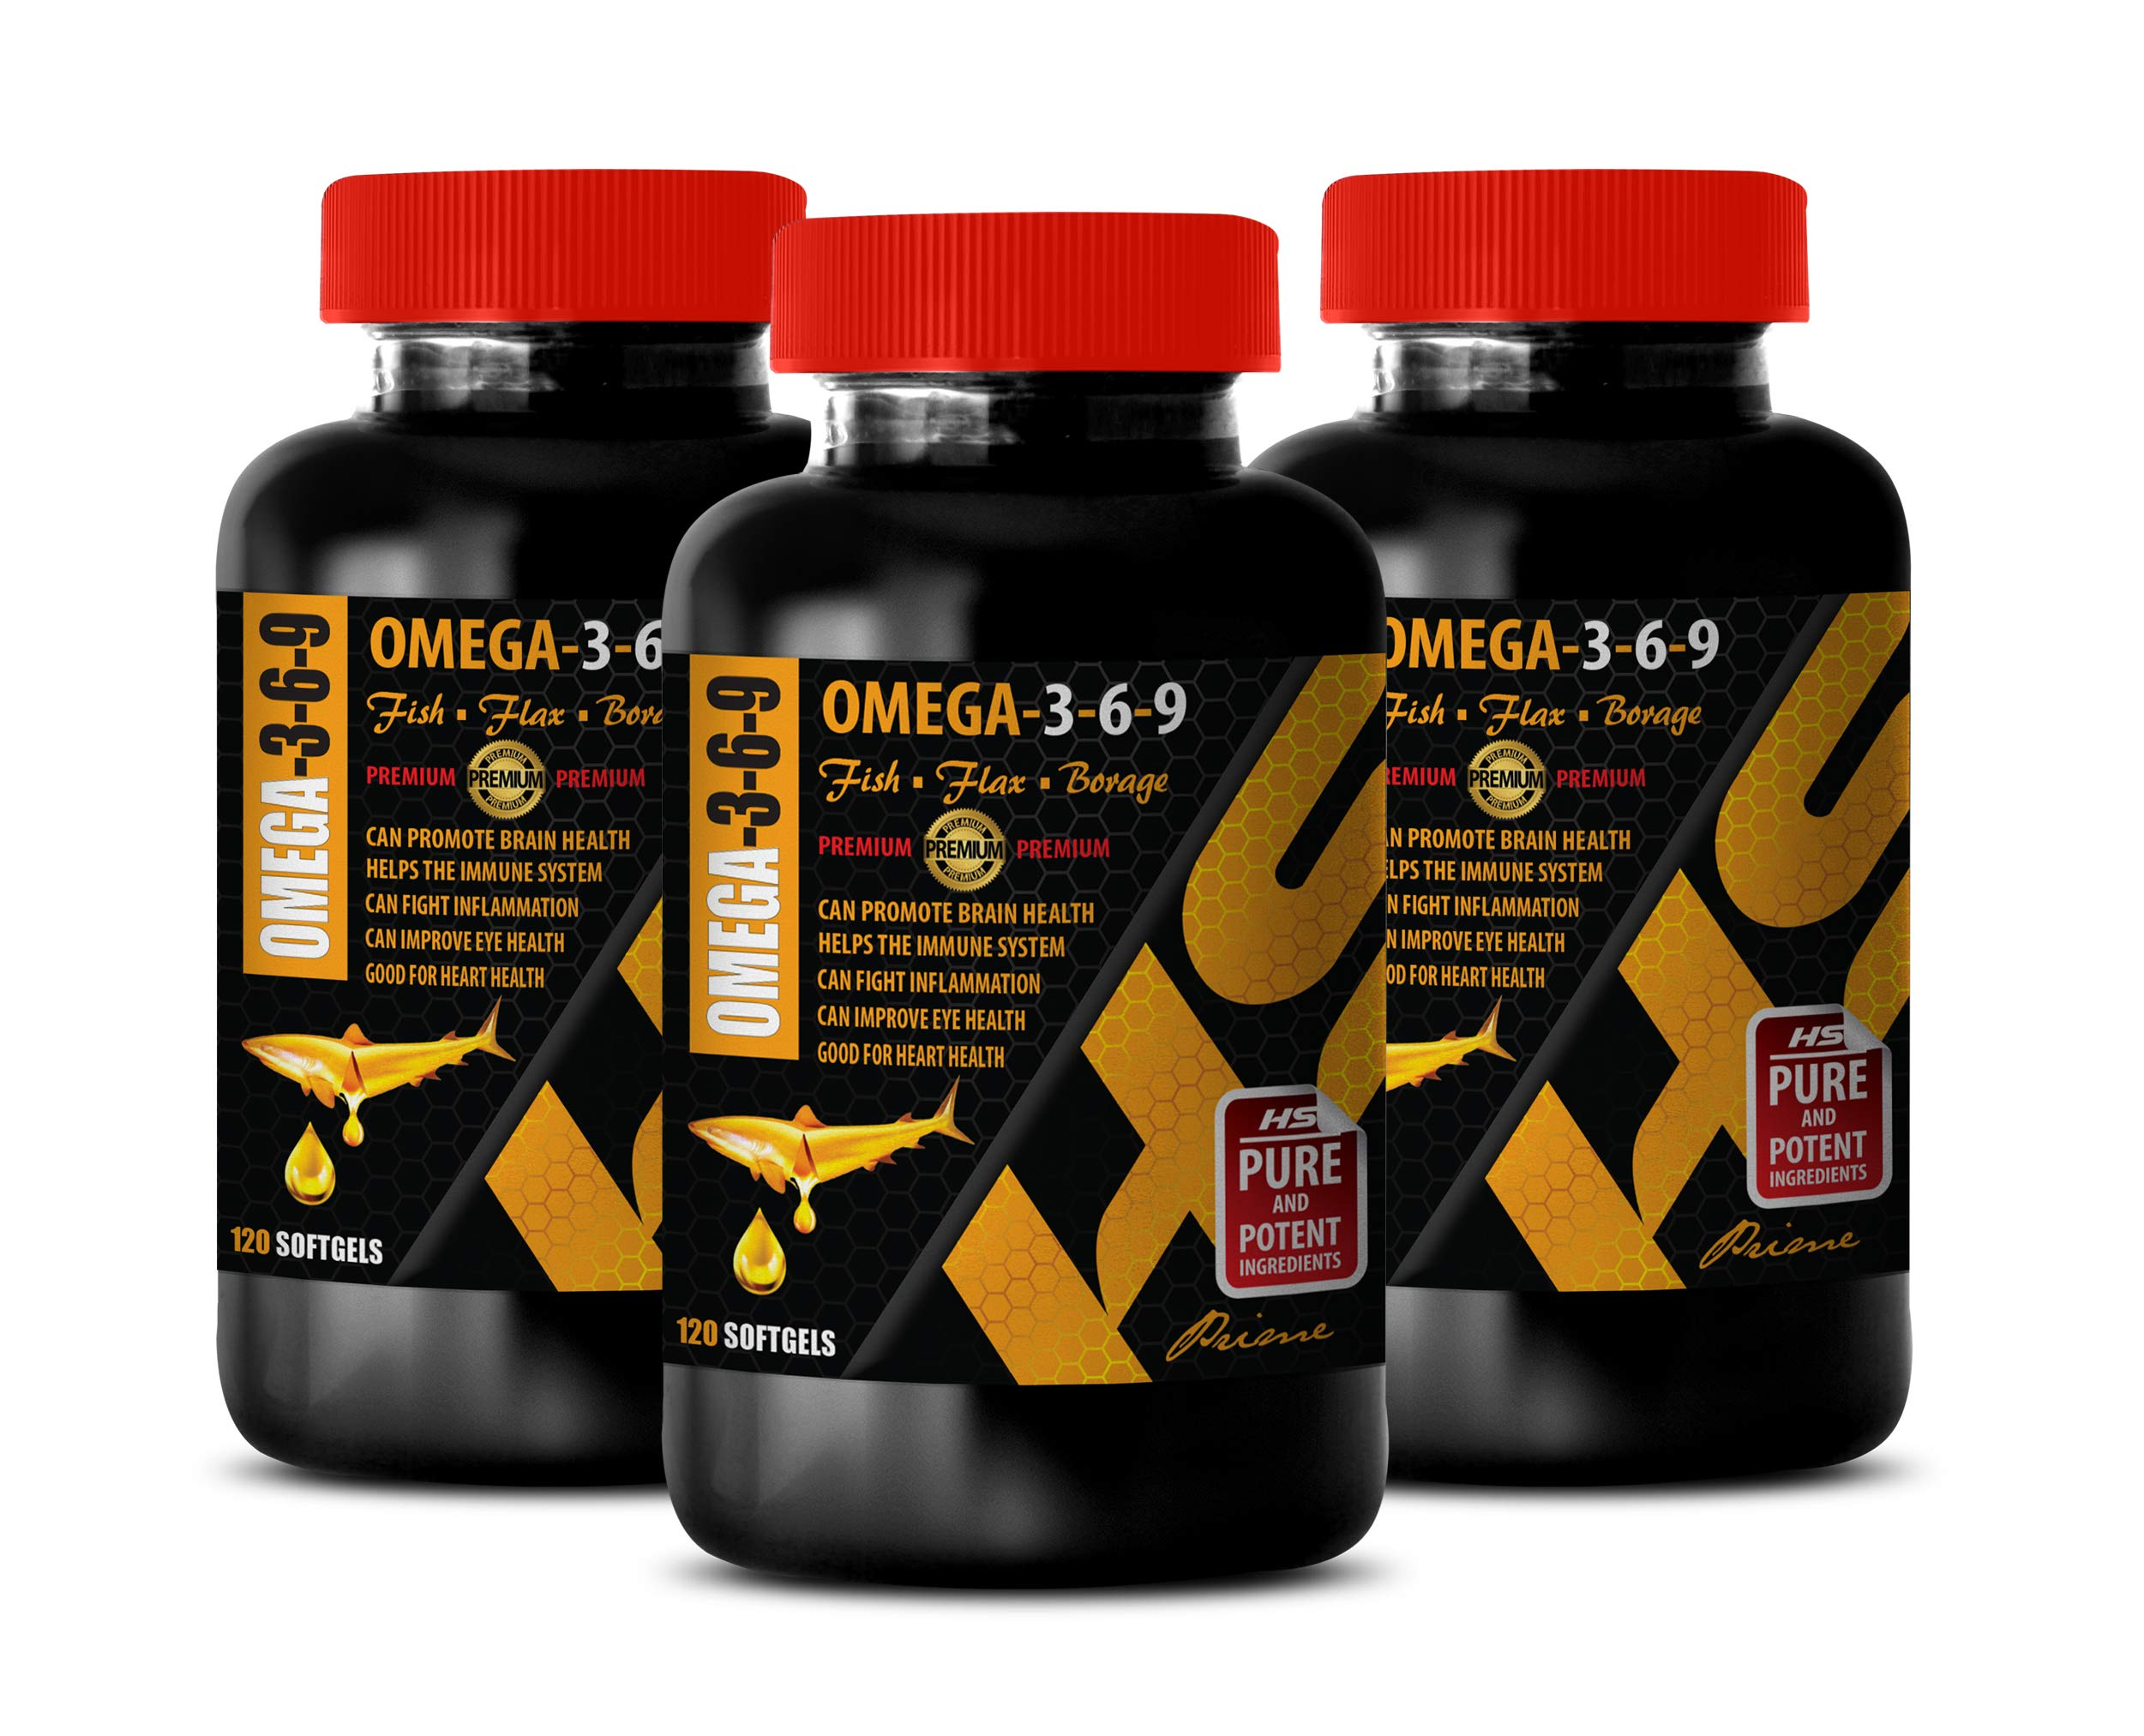 Immune Support Formula - Omega 3-6-9 Premium Complex with Fish, Flax & Borage - 3-6-9 Omega Fish Oil - 3 Bottles 360 Softgels by HS PRIME